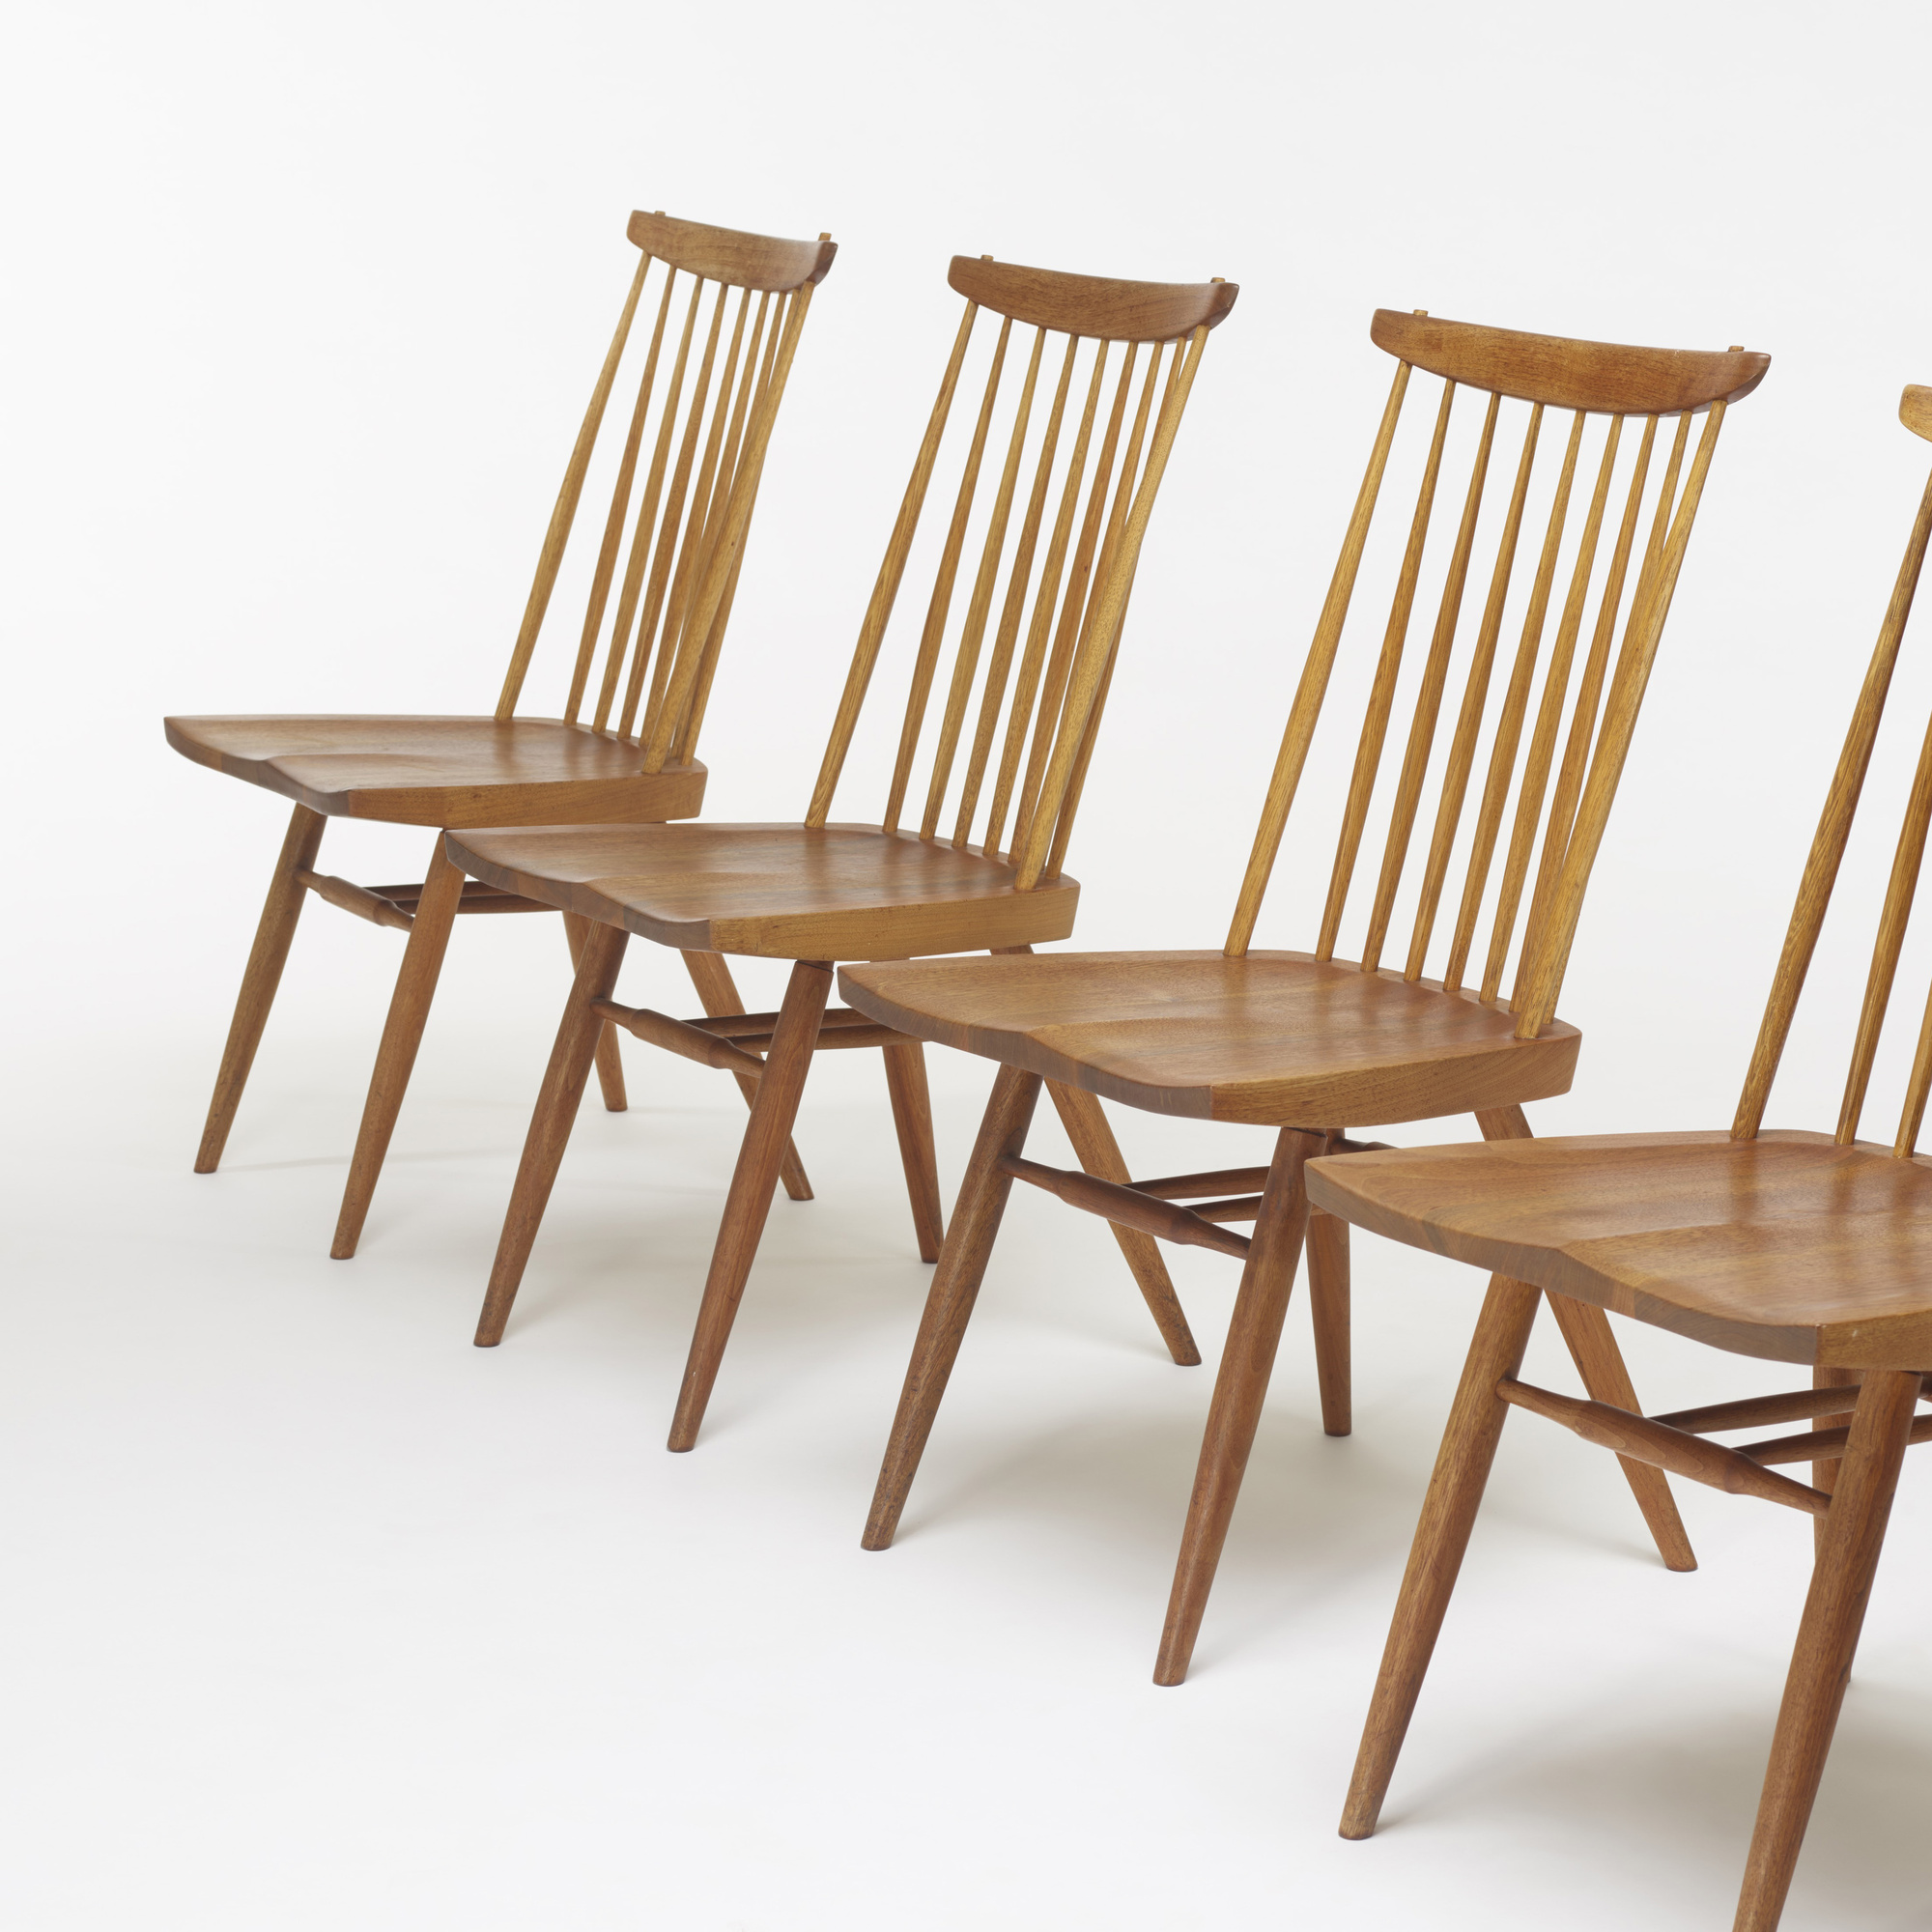 124: George Nakashima / New chairs, set of six (3 of 3)